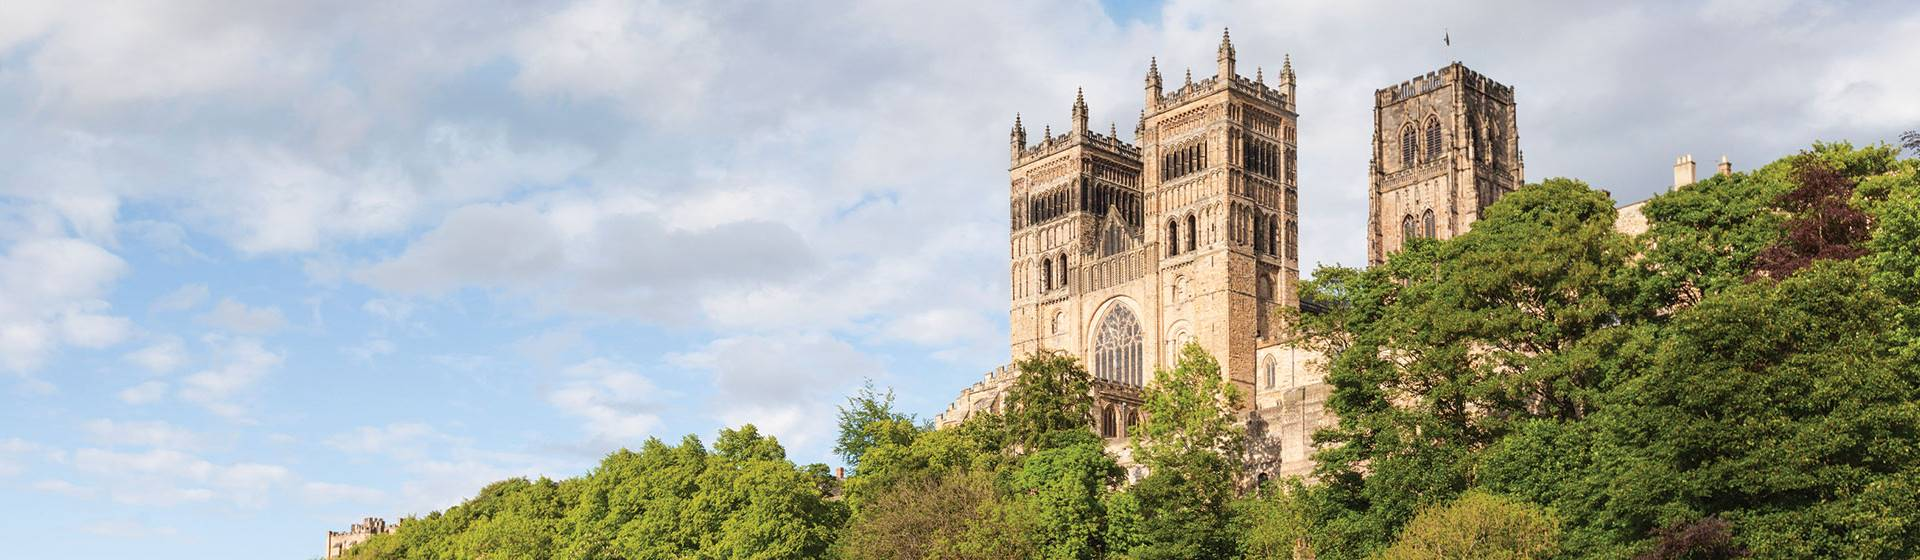 Durham Historic World Heritage City